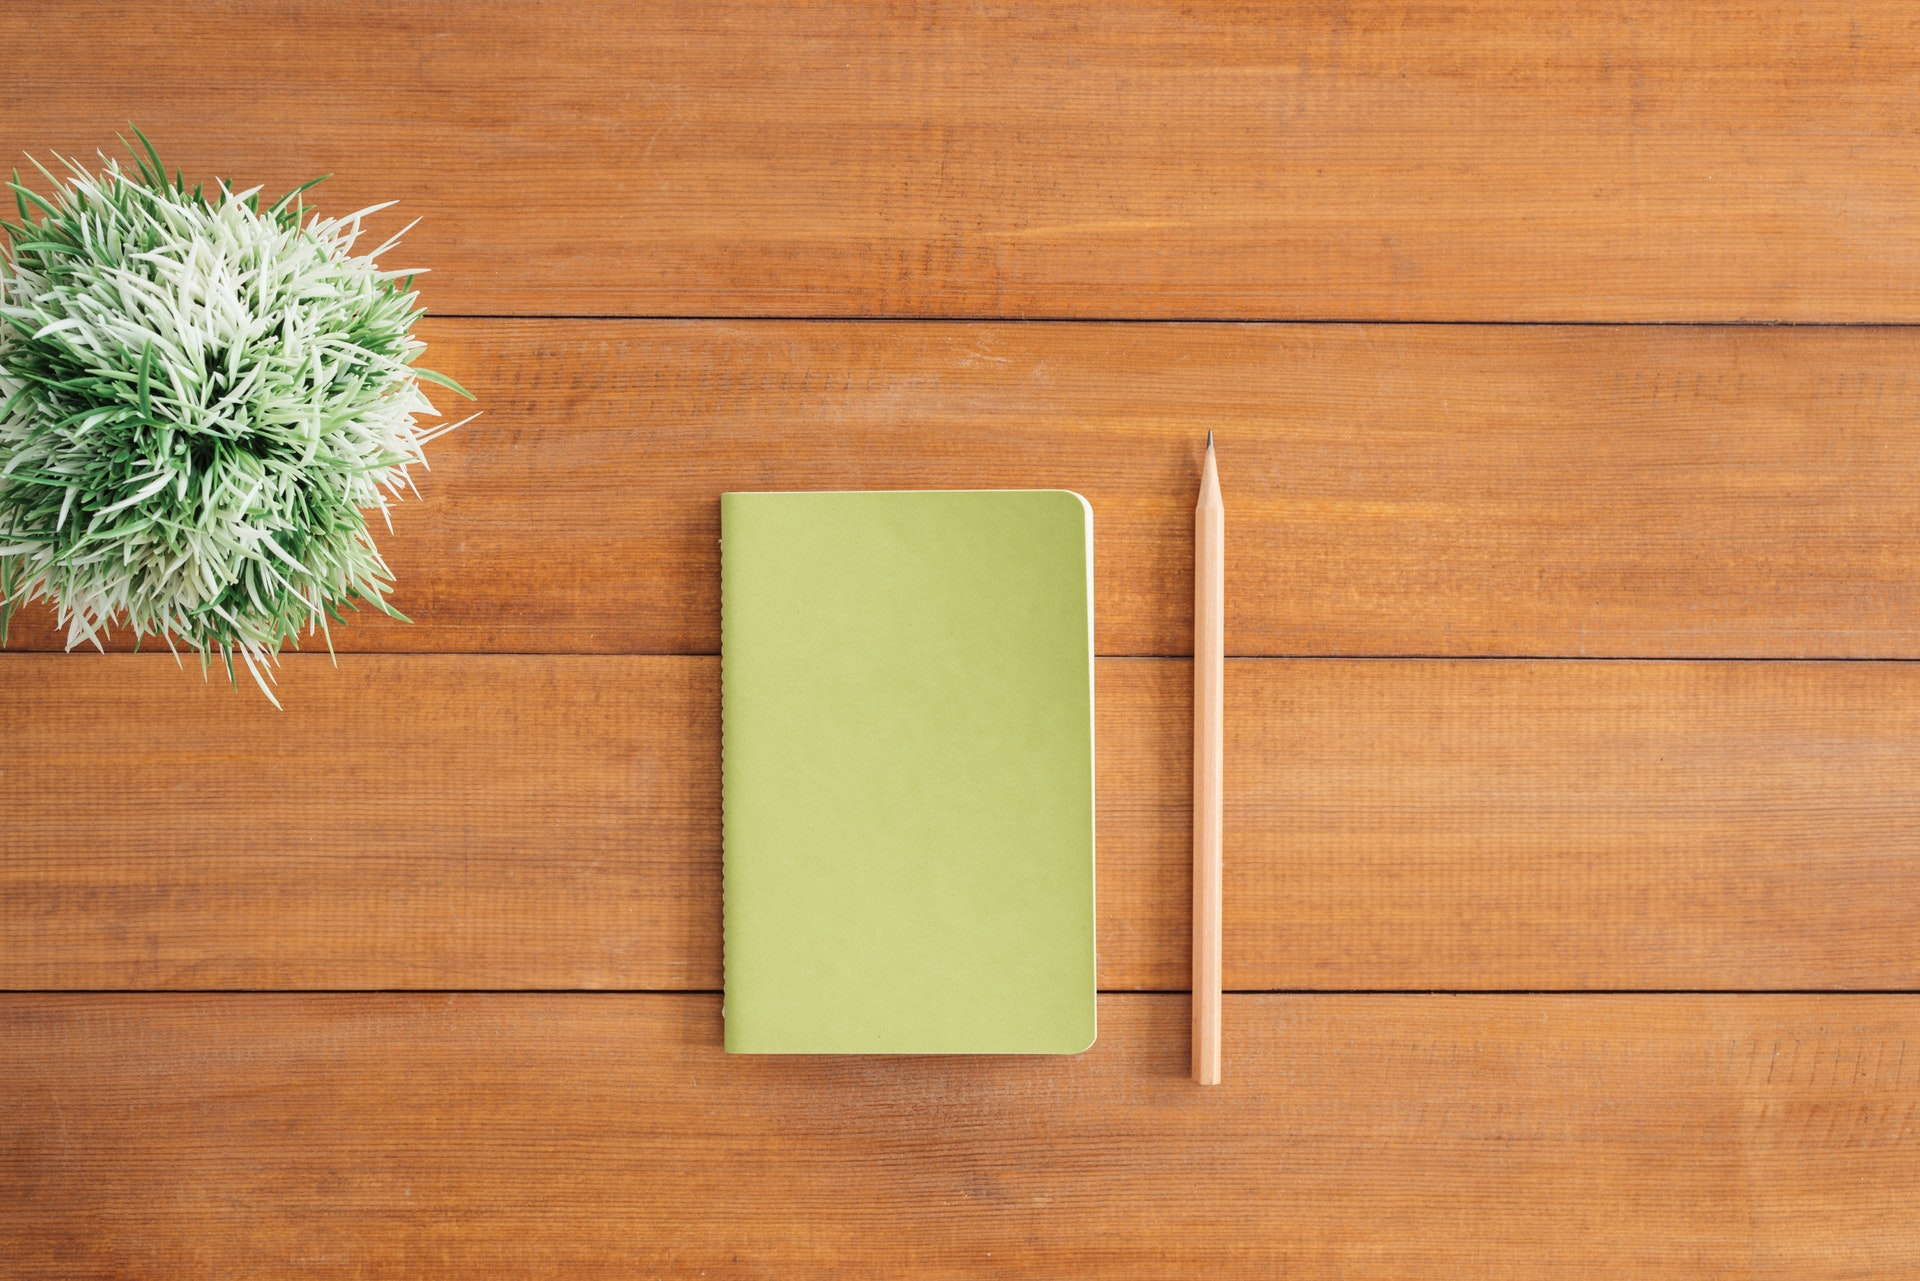 13 New Year's Resolutions to help your small business succeed